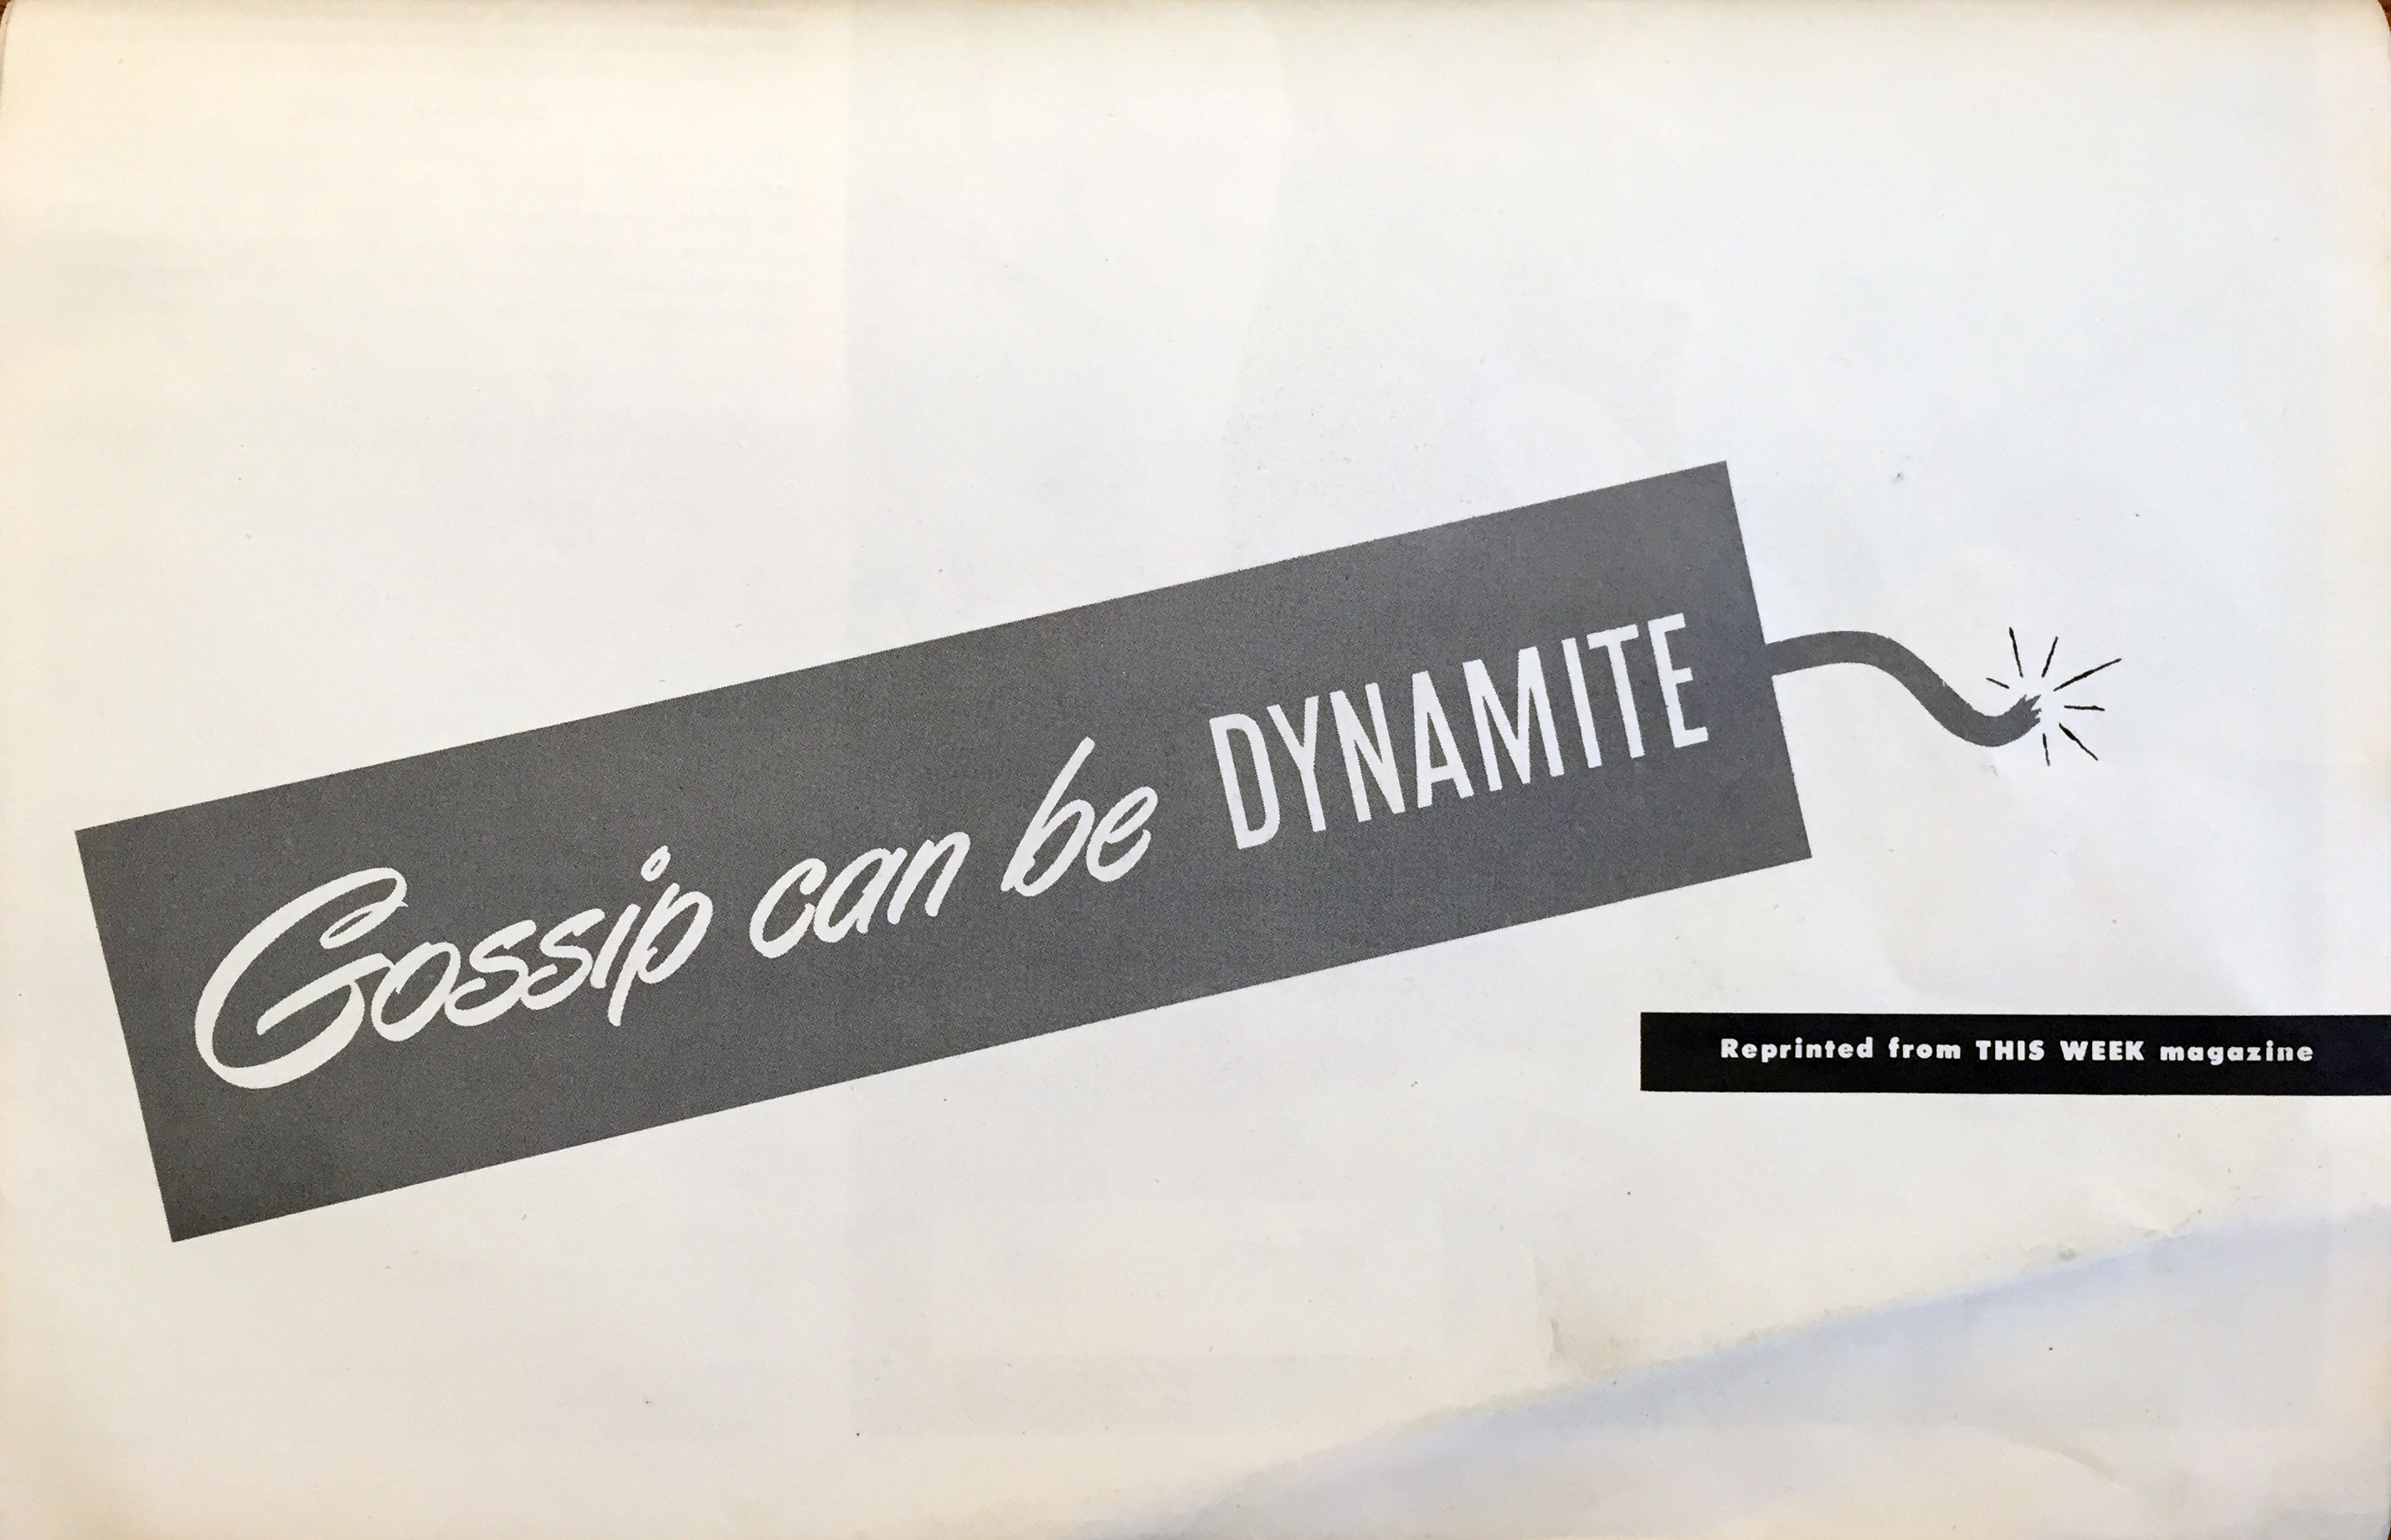 Gossip Can Be Dynamite